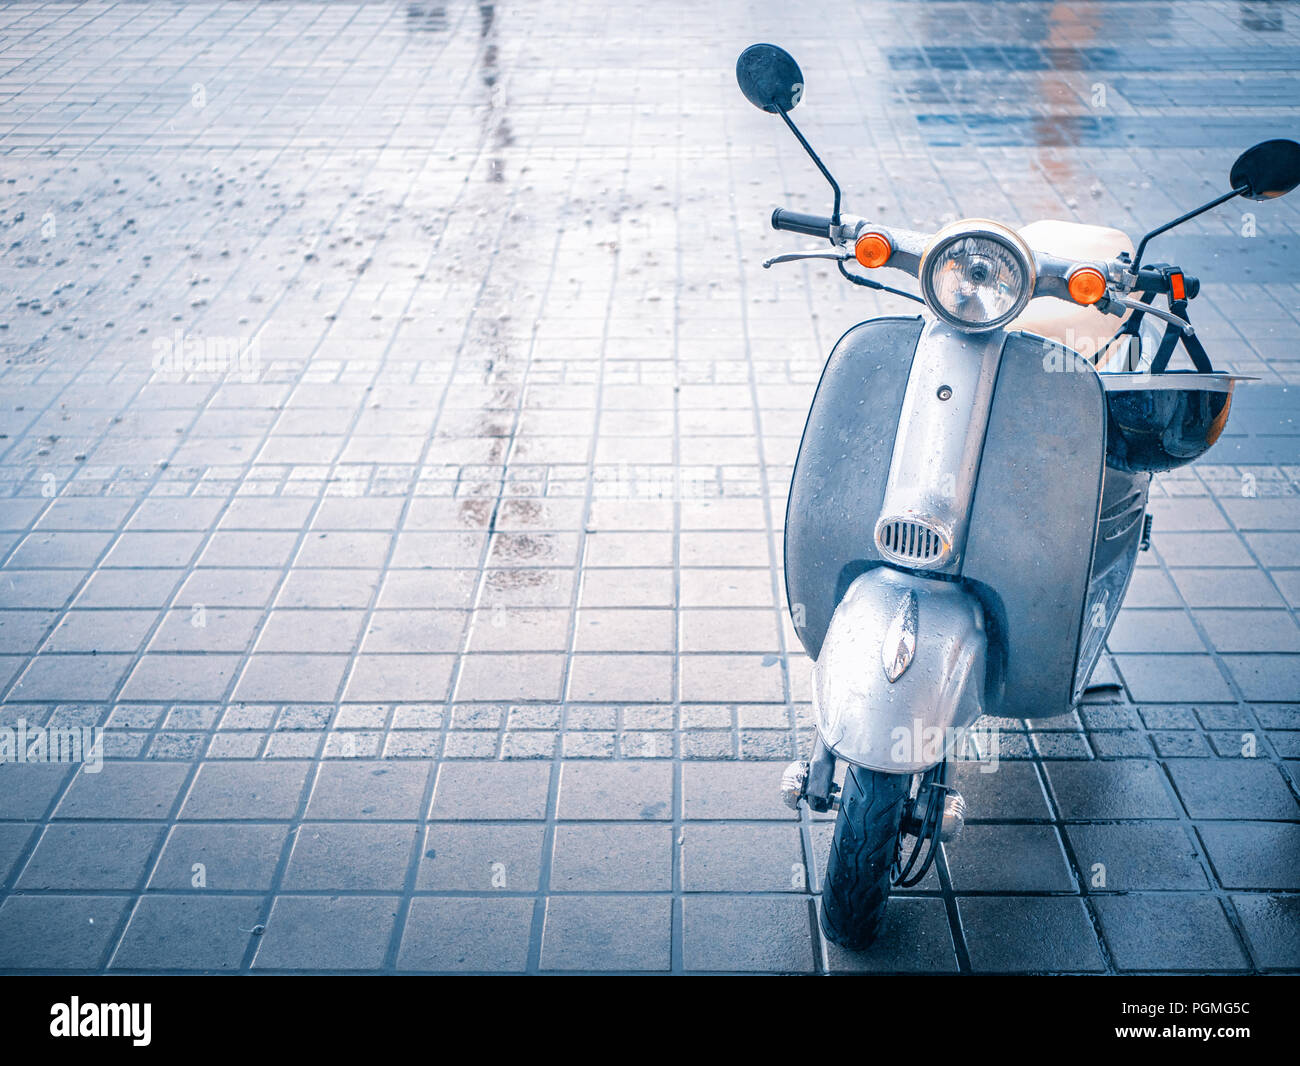 Cute Small Vespa Motobike Scooter At Paving Stone Parking Rainy Day Car Bike Sharing Service Concept Vintage Retro Style Shot With Copy Space Stock Photo Alamy